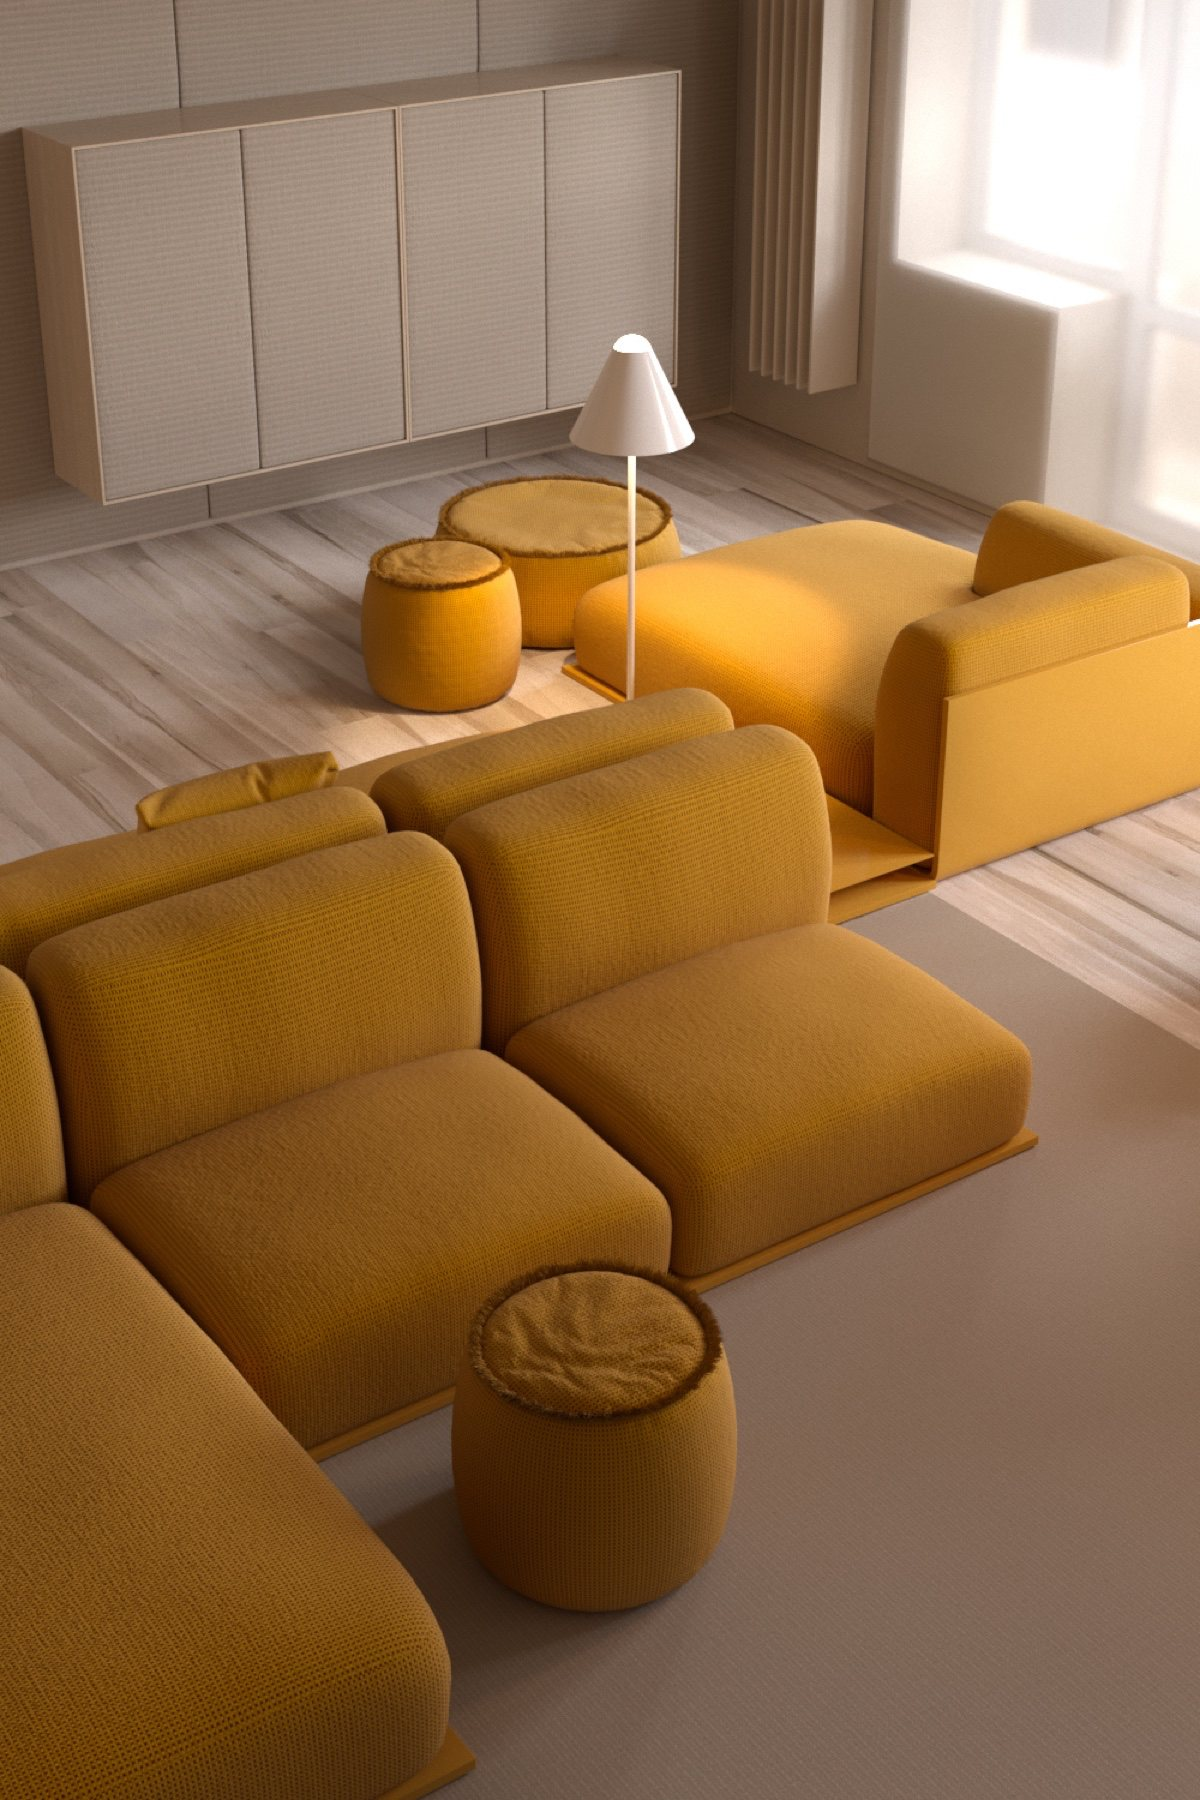 mustard living room sprawled out six seater clean 70's